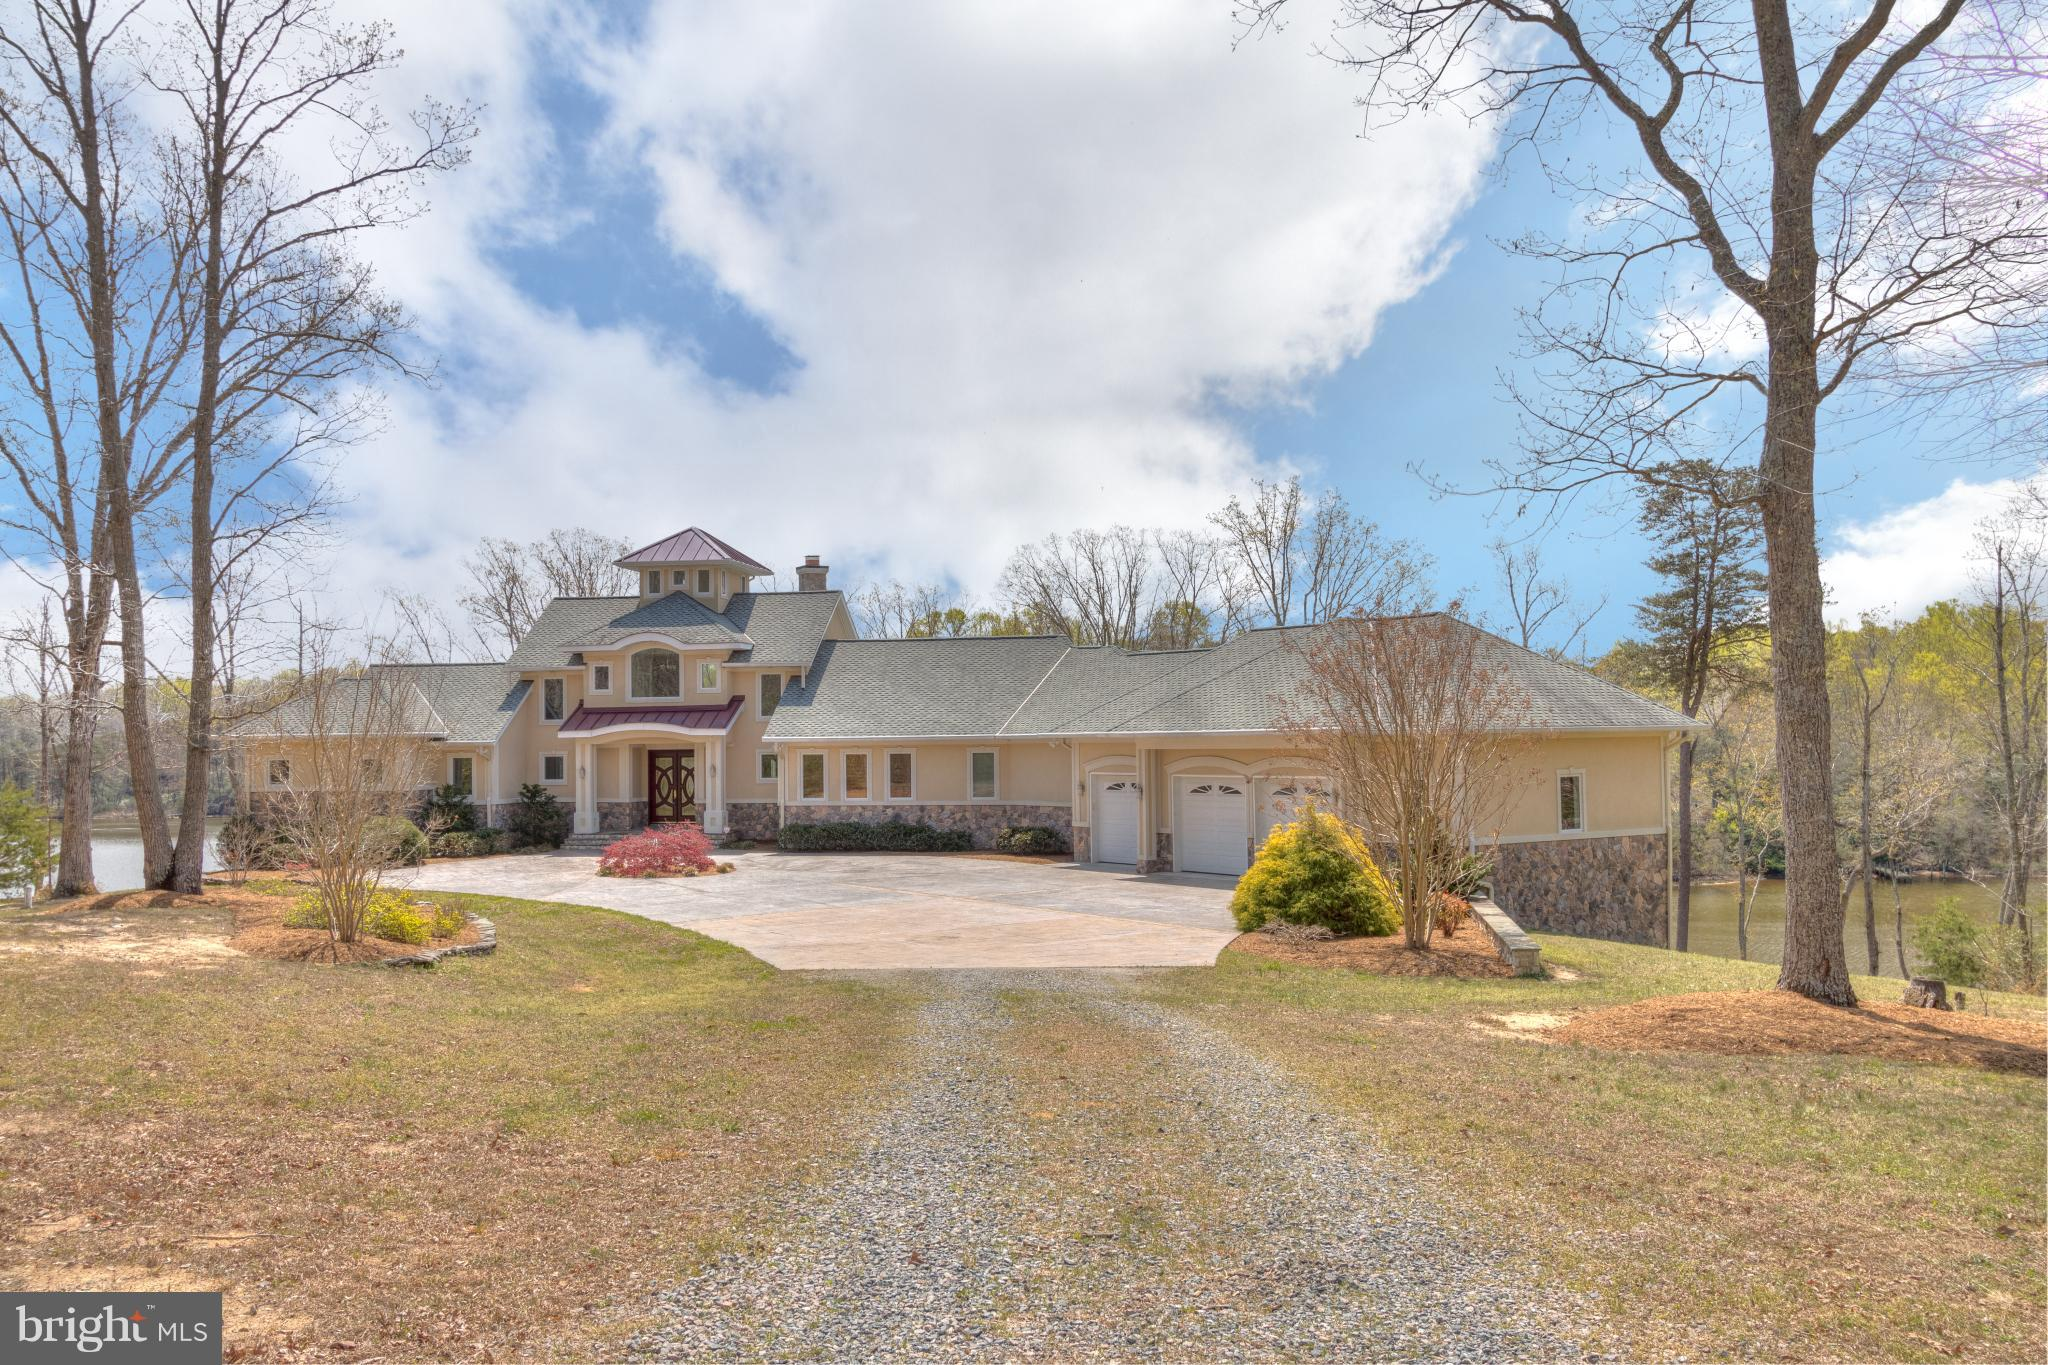 808 HULL HARBOR ROAD, HEATHSVILLE, VA 22473